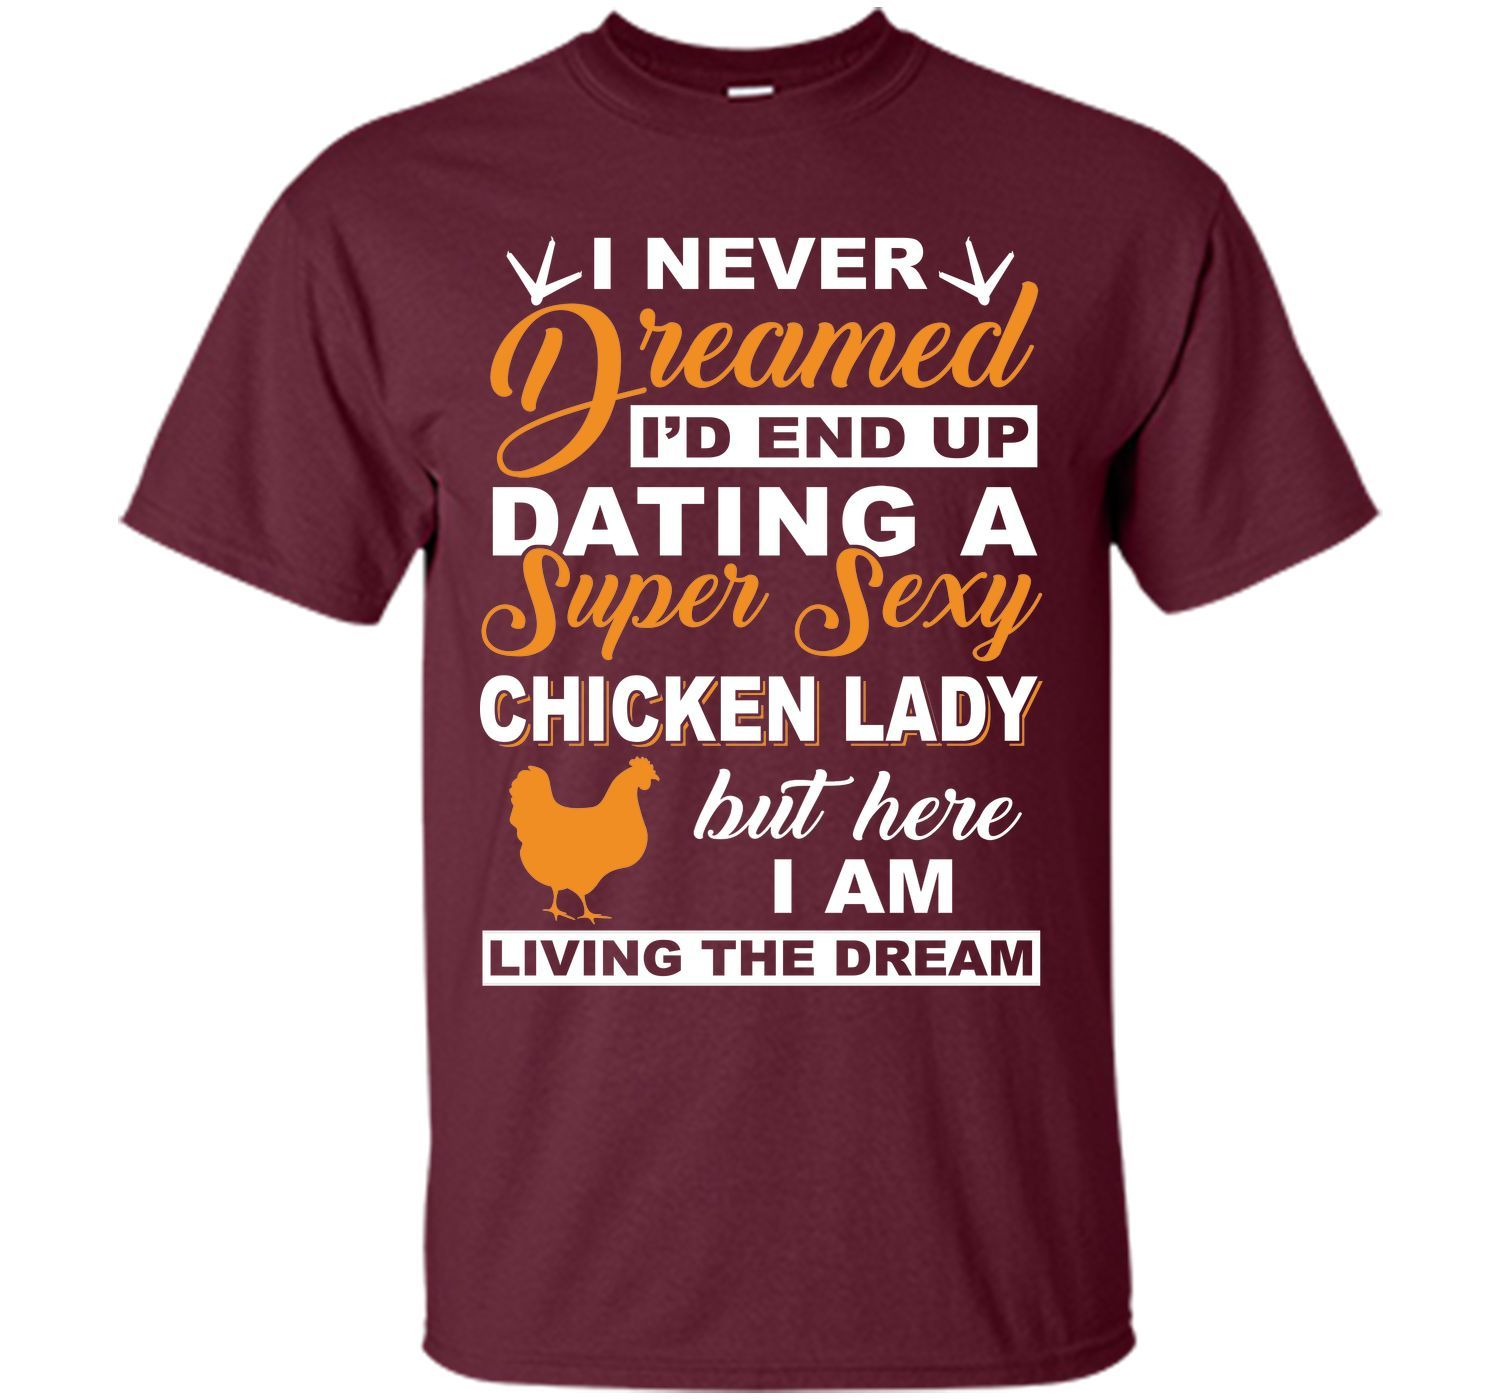 I'd End Up Dating A Super Sexy Chicken Lady T-Shirt